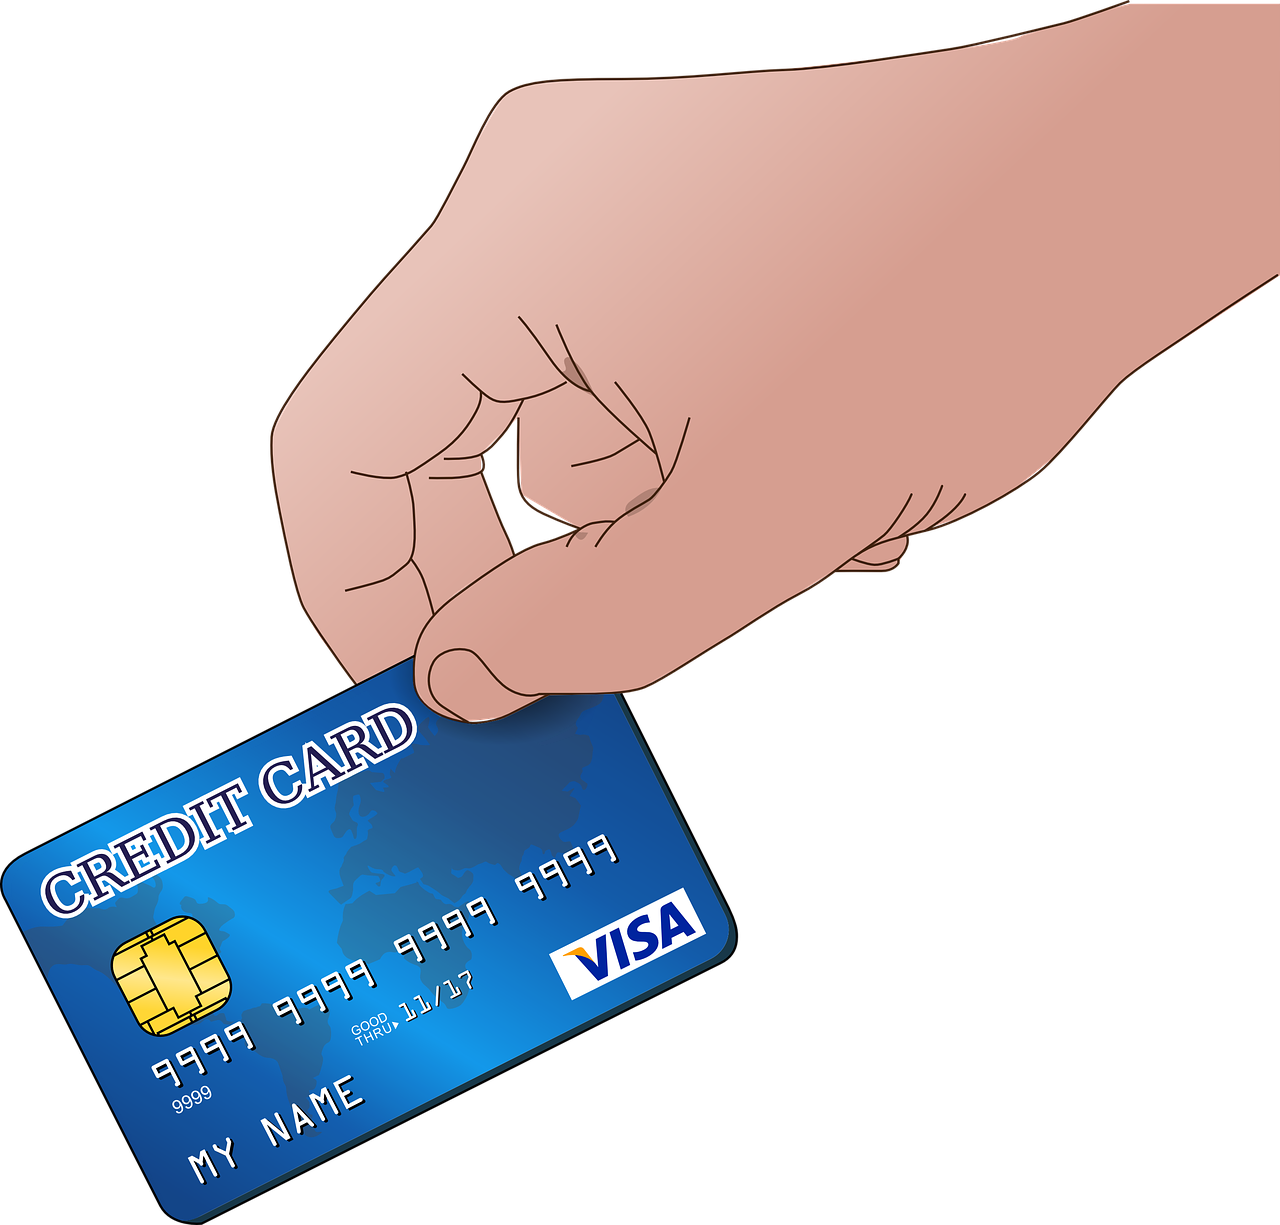 Visa Credit Card, What Are the Advantages and Benefits?